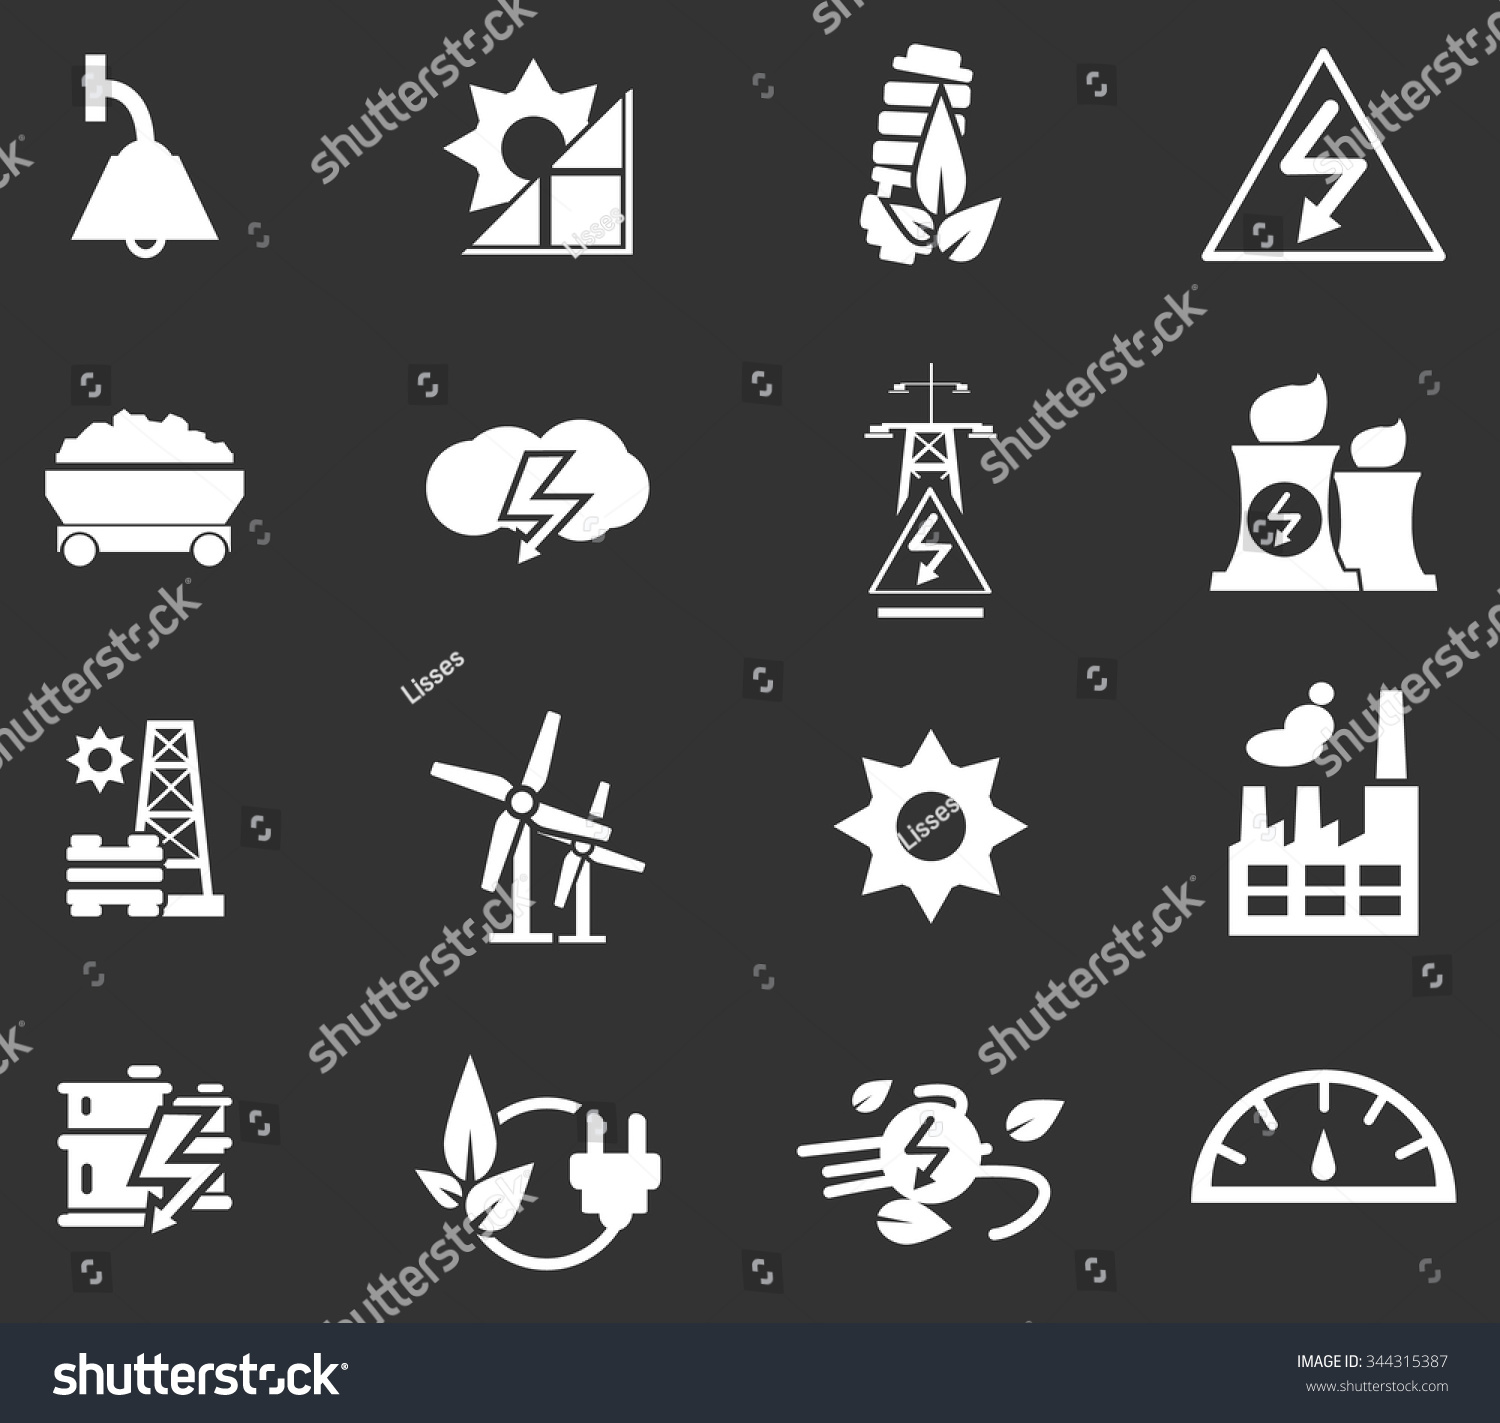 Energy power symbol web icons stock vector 344315387 shutterstock energy and power symbol for web icons biocorpaavc Gallery